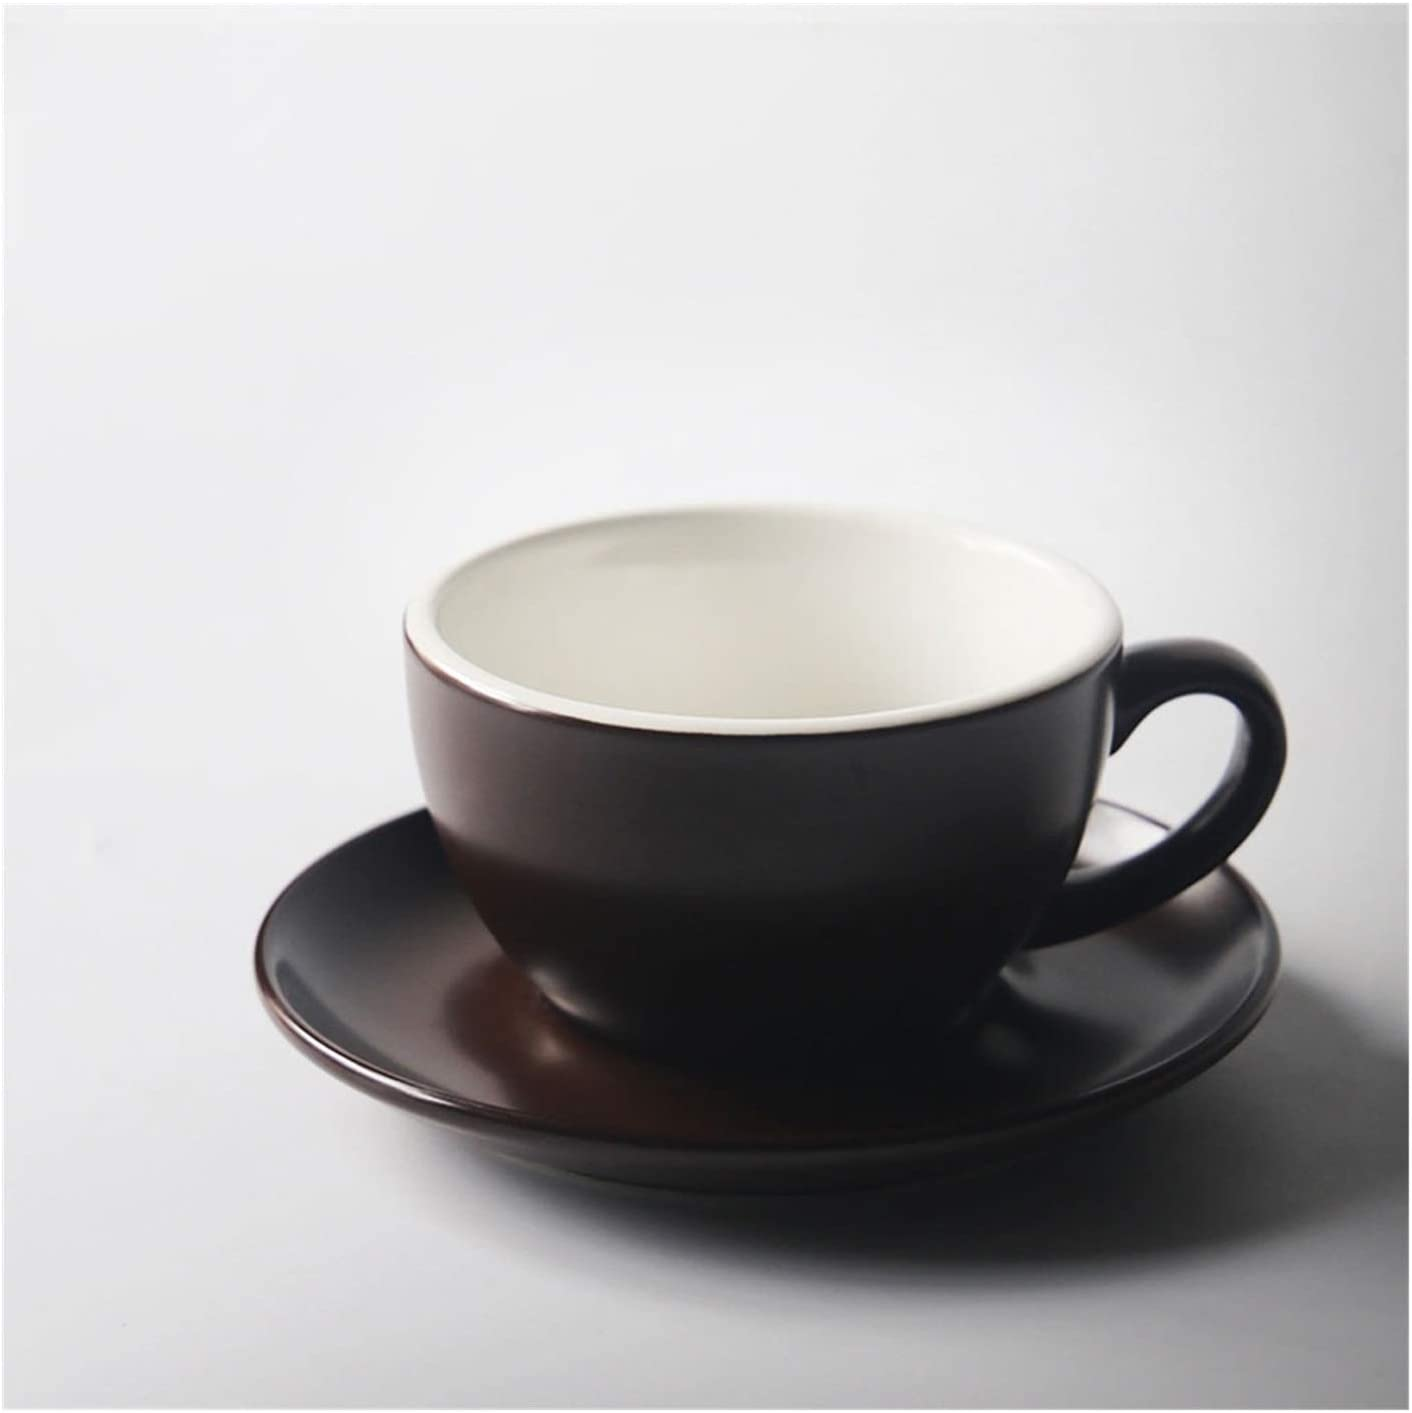 Coffee Award-winning store Lowest price challenge Cups Classic Design Cappuccino Porcelain Cup